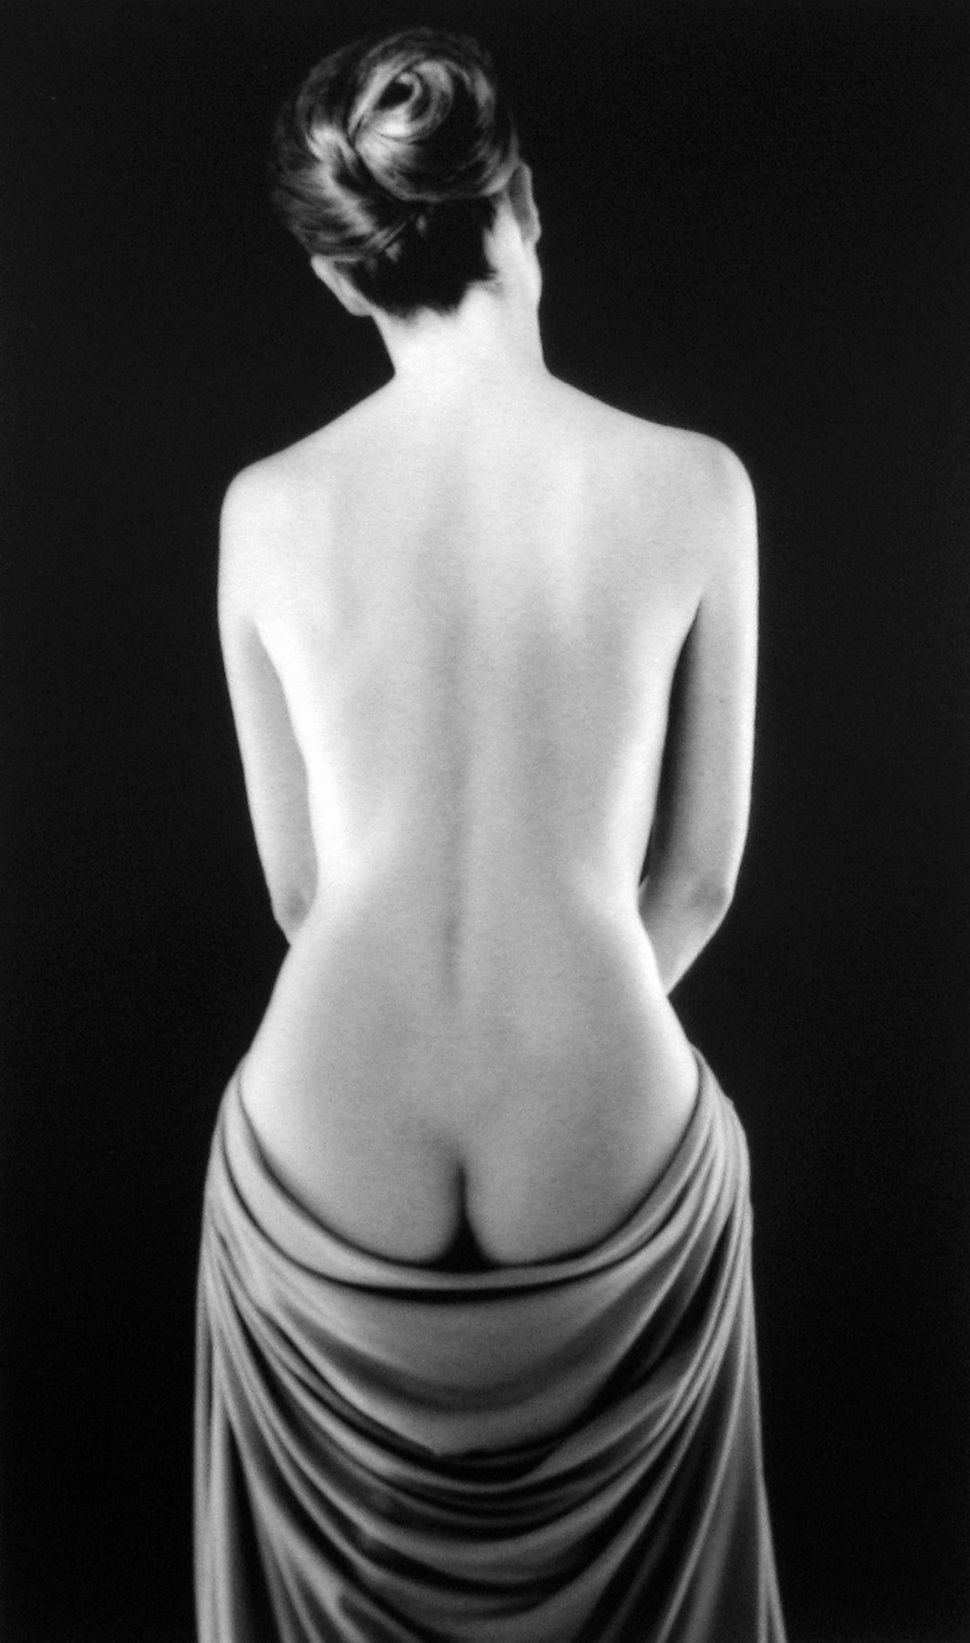 Ruth Bernhard, Draped Torso, 1962, Selenium-toned silver gelatin print, 12.75 x 8.25 in.  © Ruth Bernhard Estate. Courtesy Pe